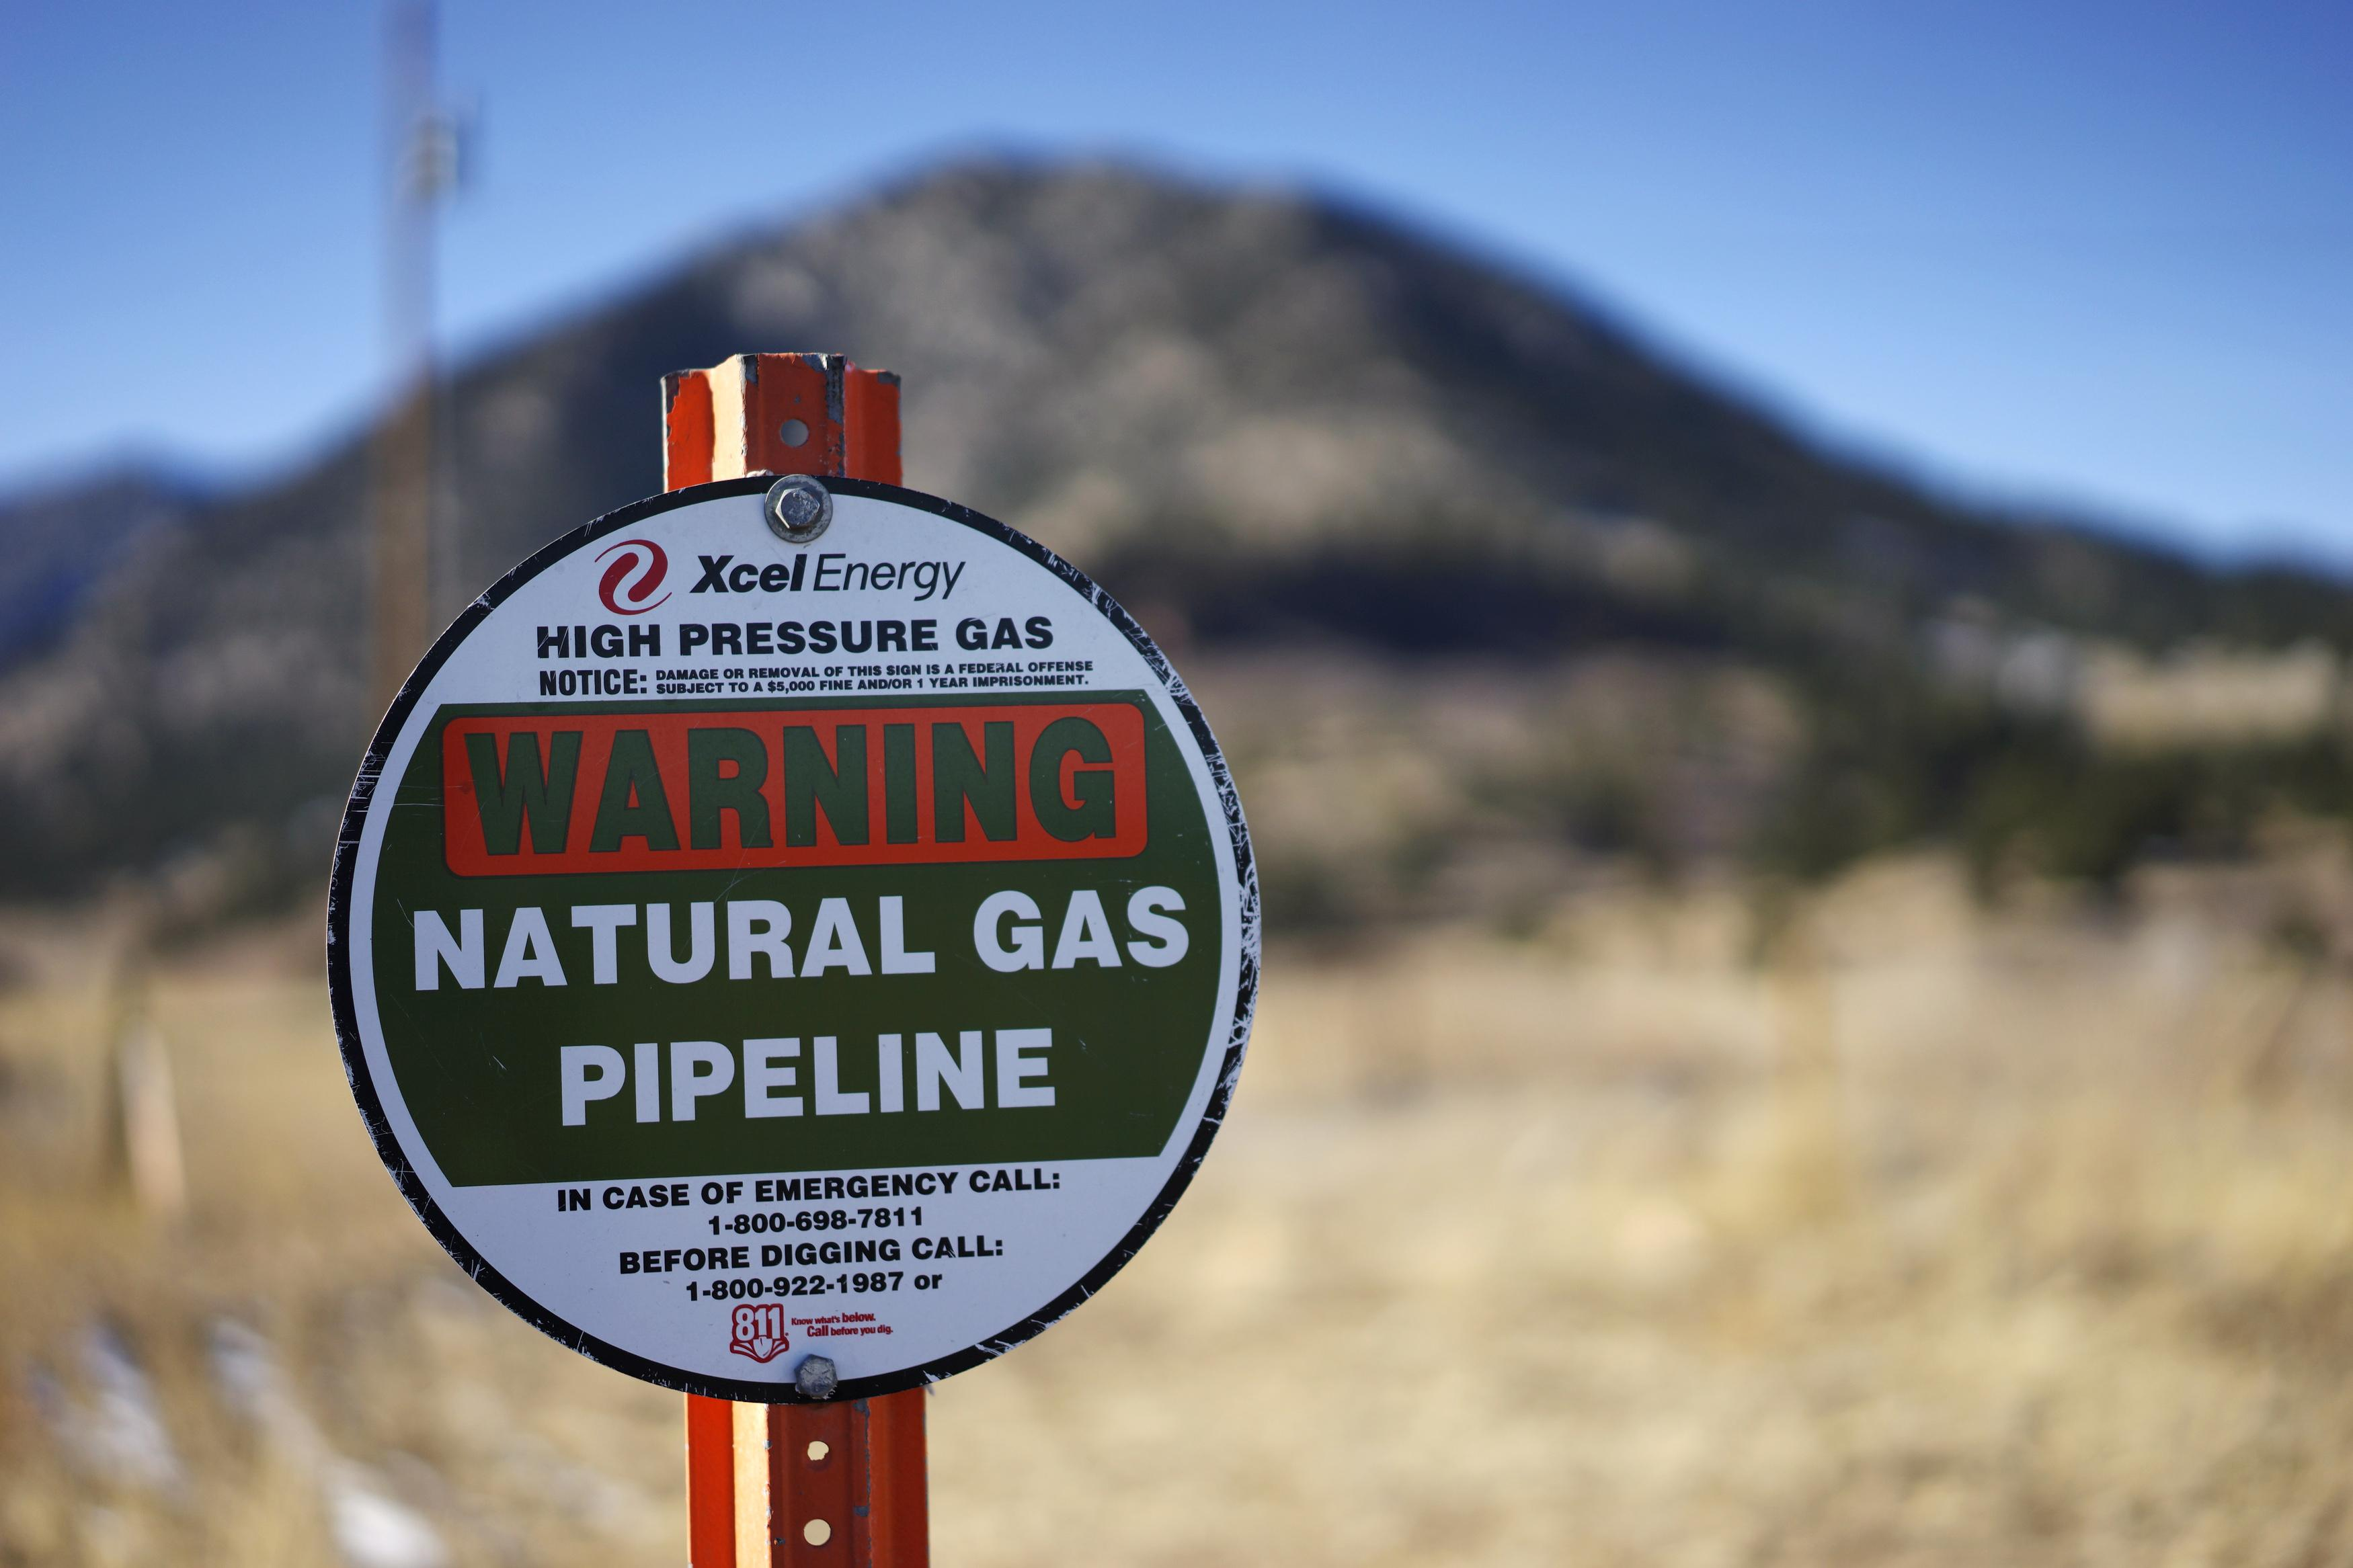 Is your kids school near a gas line how big oil blocks health and safety regulations in colorado - Grillplaat gas b ruleurs ...